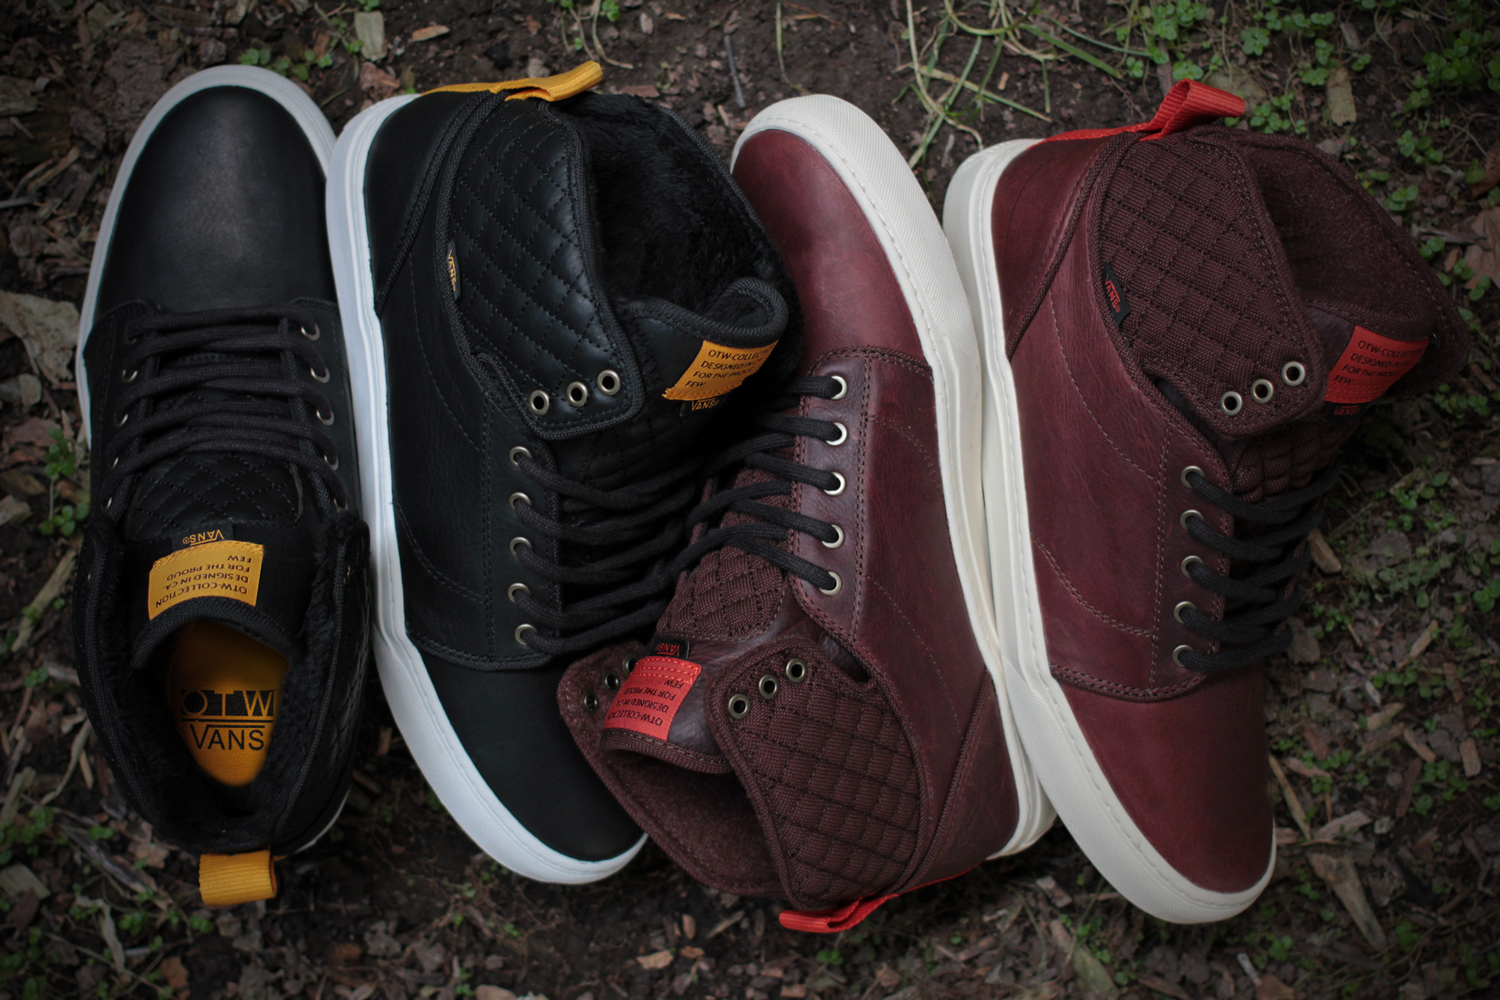 f0e5aa90df Vans OTW Collection Alomar AW for Holiday 2013